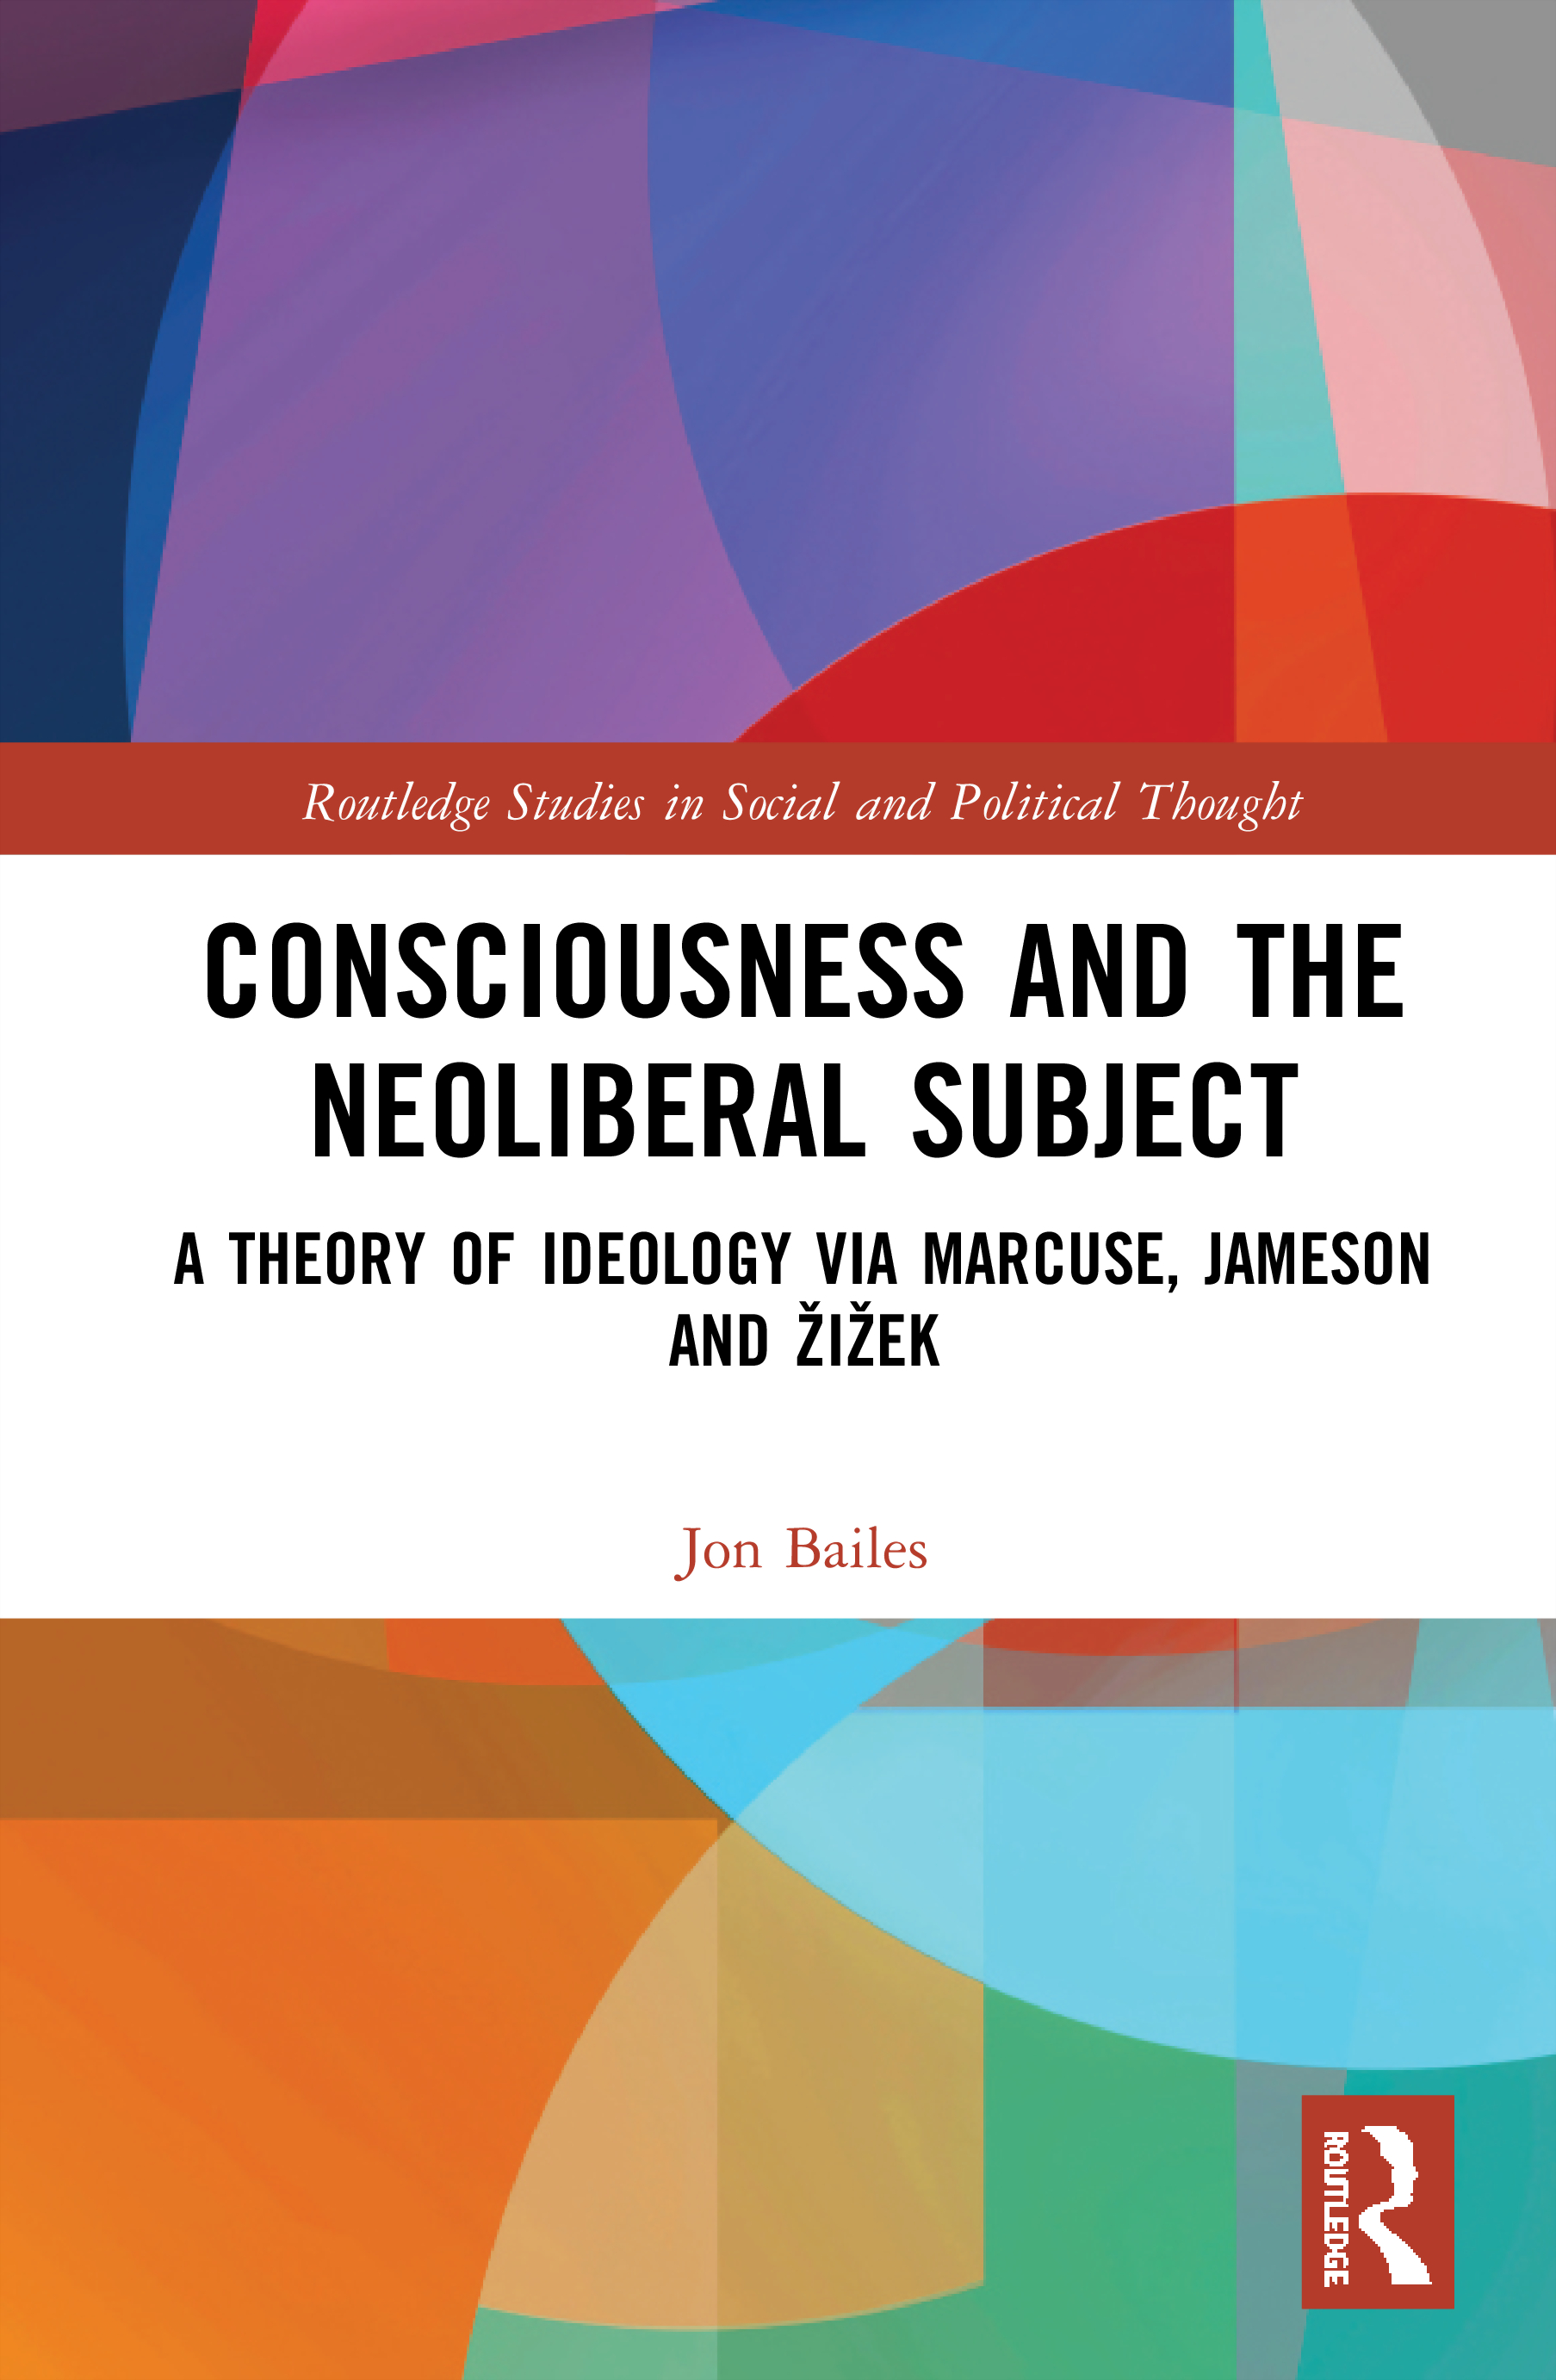 Consciousness and the Neoliberal Subject: A Theory of Ideology via Marcuse, Jameson and Žižek, 1st Edition (Hardback) book cover